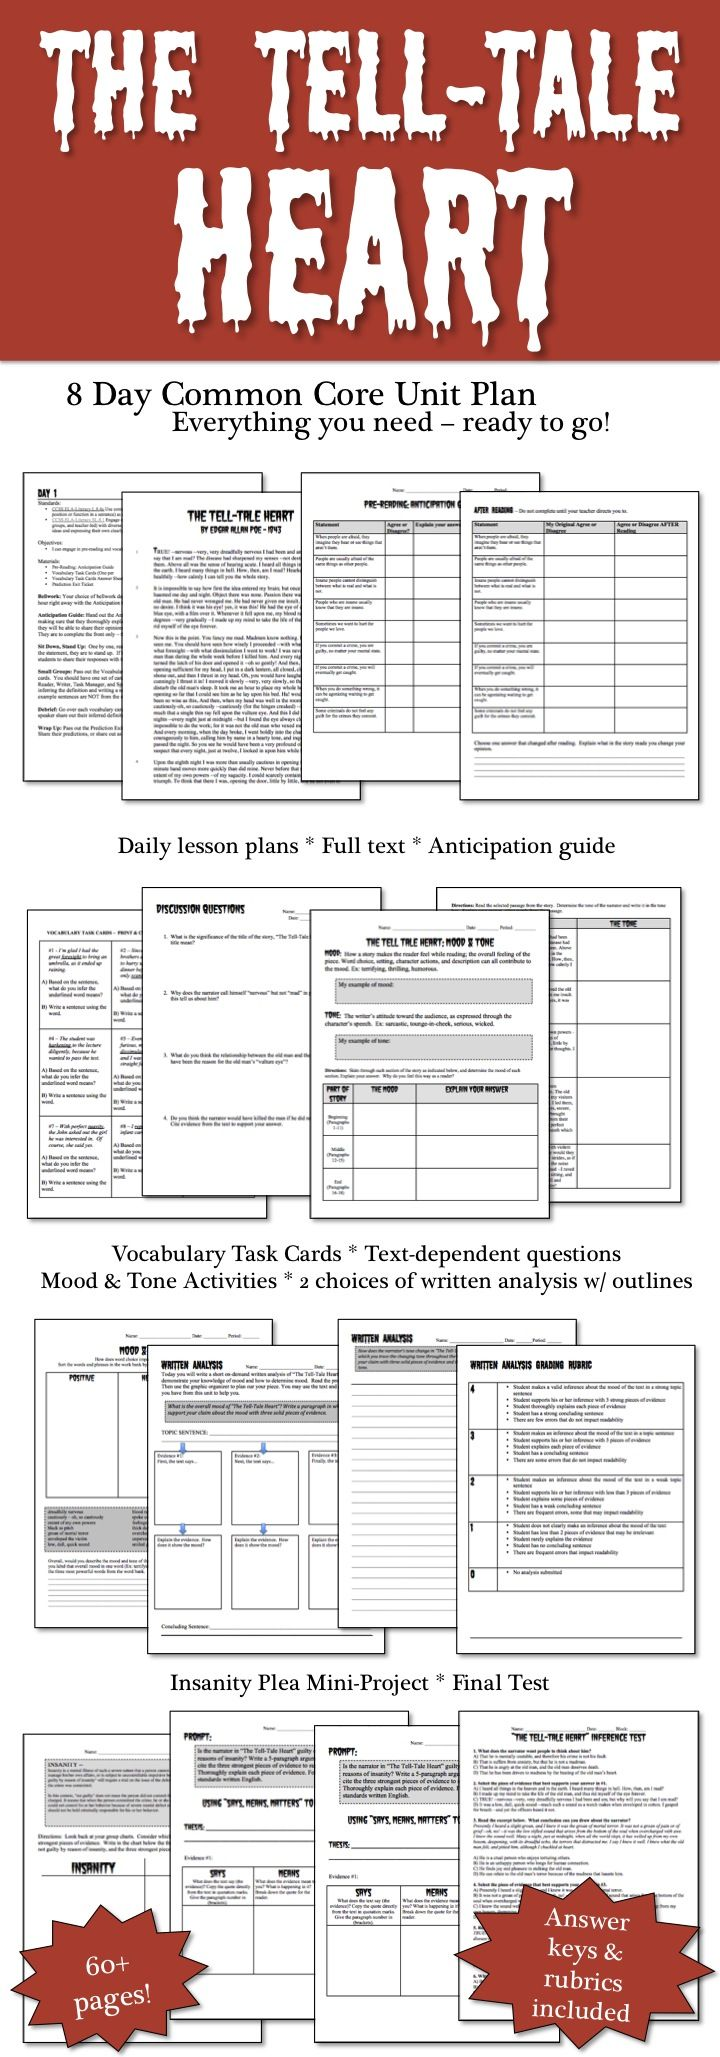 best images about teaching writers notebook tell tale heart by edgar allan poe 8 day common core aligned unit plan